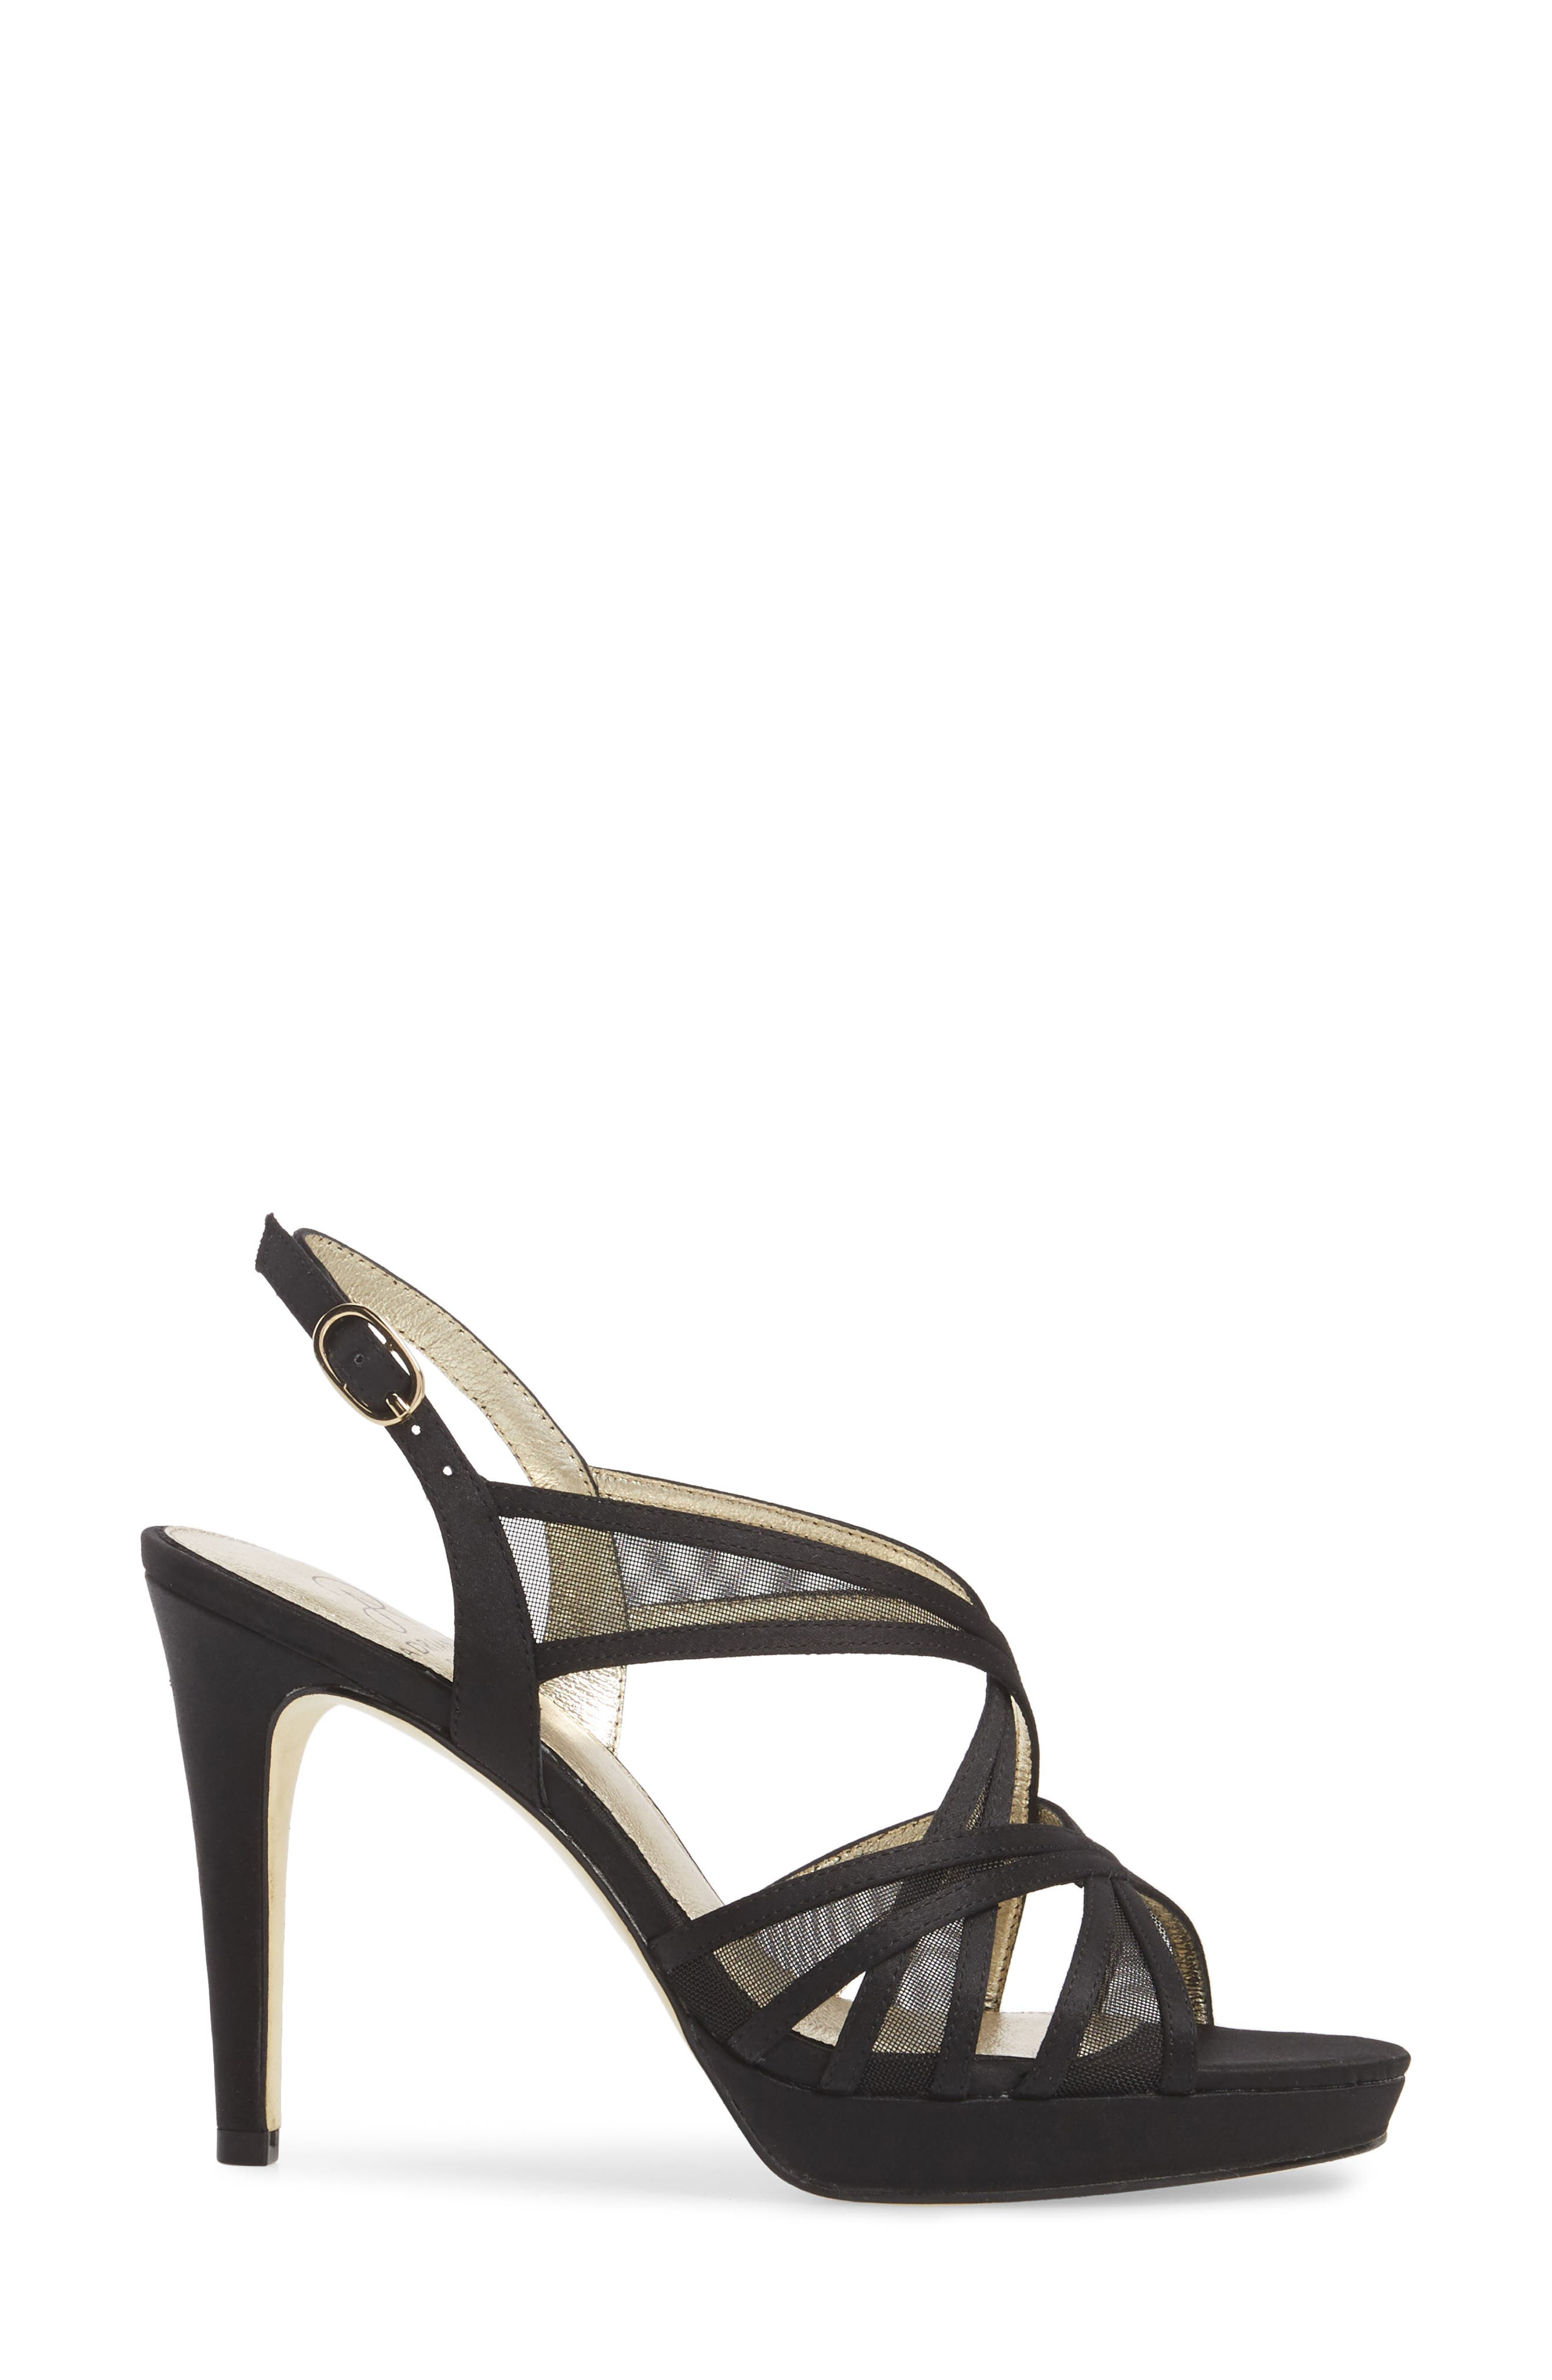 Adri Platform Sandal,                             Alternate thumbnail 3, color,                             Black Satin